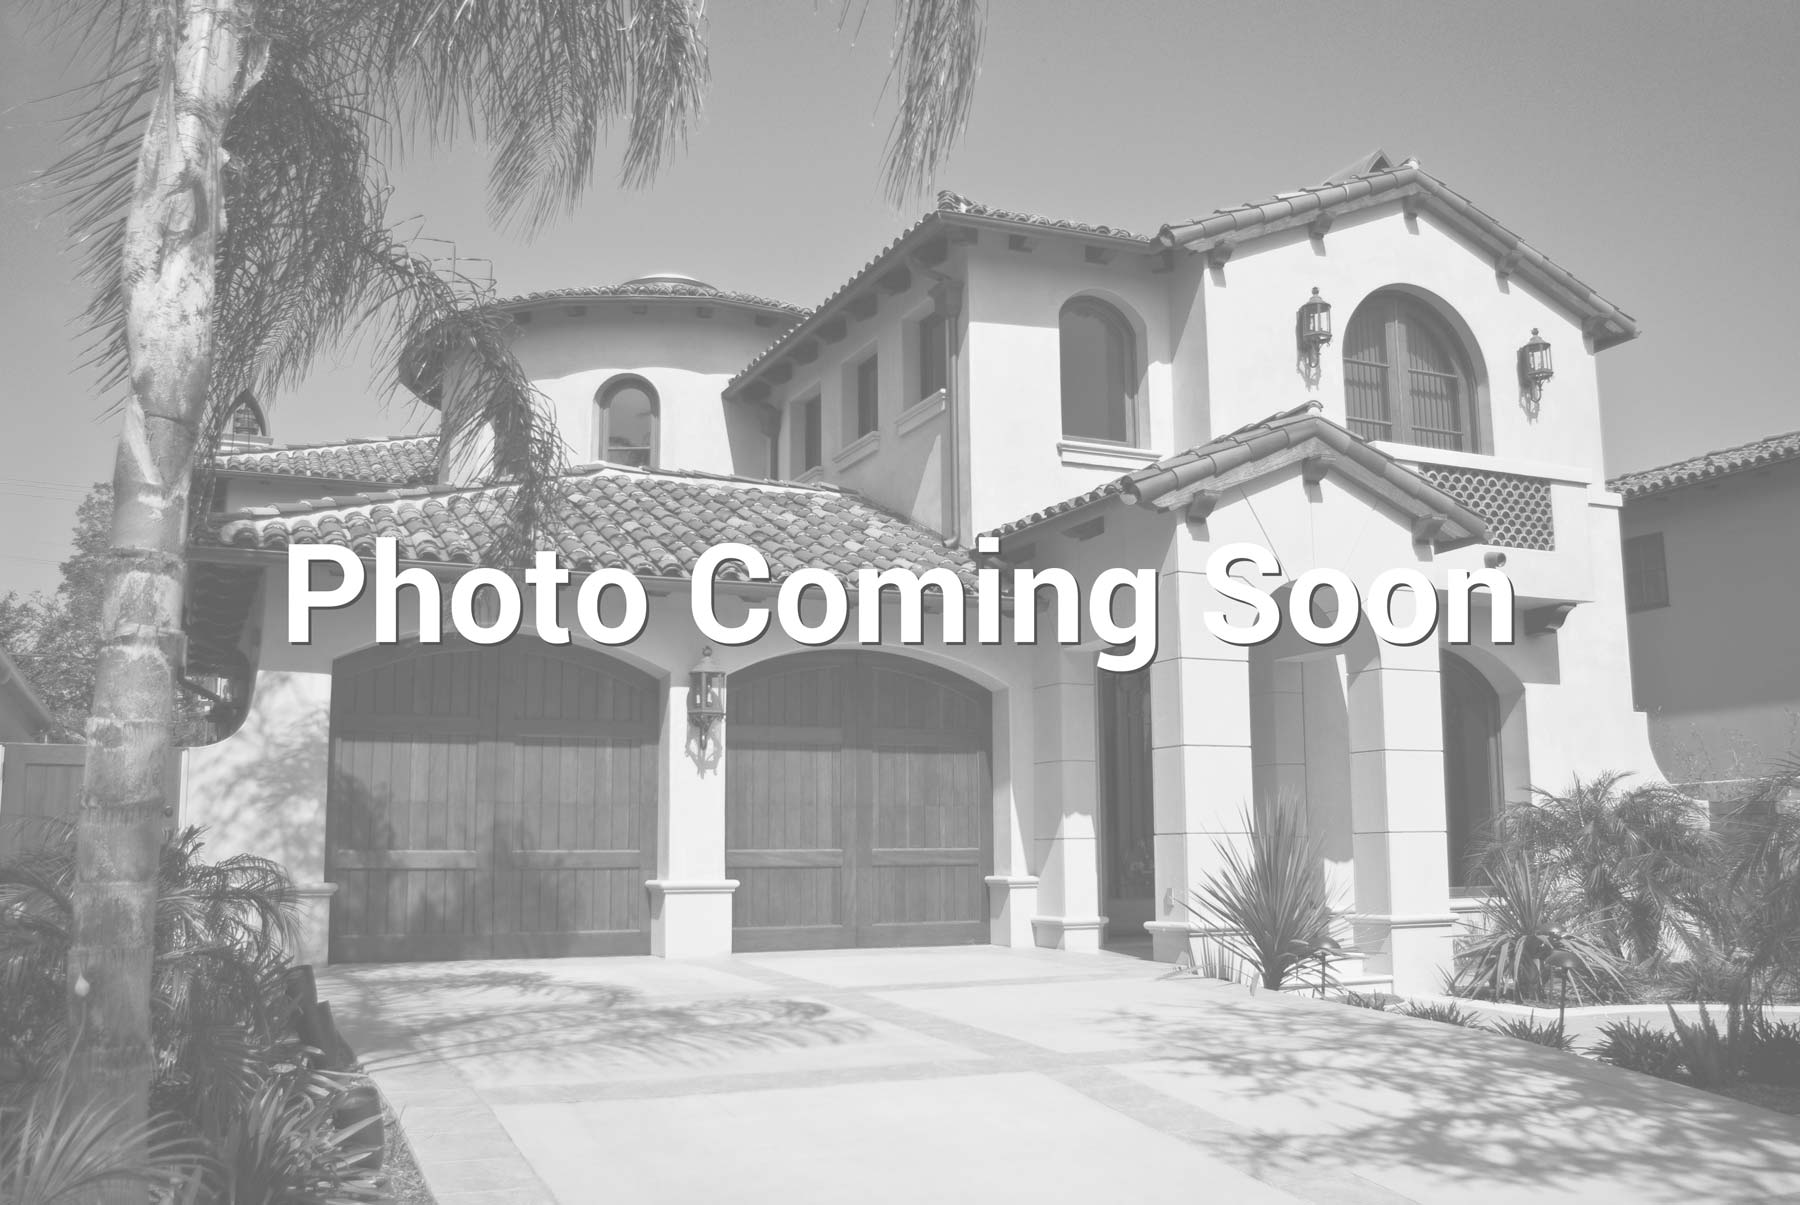 $2,700 - 2Br/2Ba -  for Sale in Westlake Village